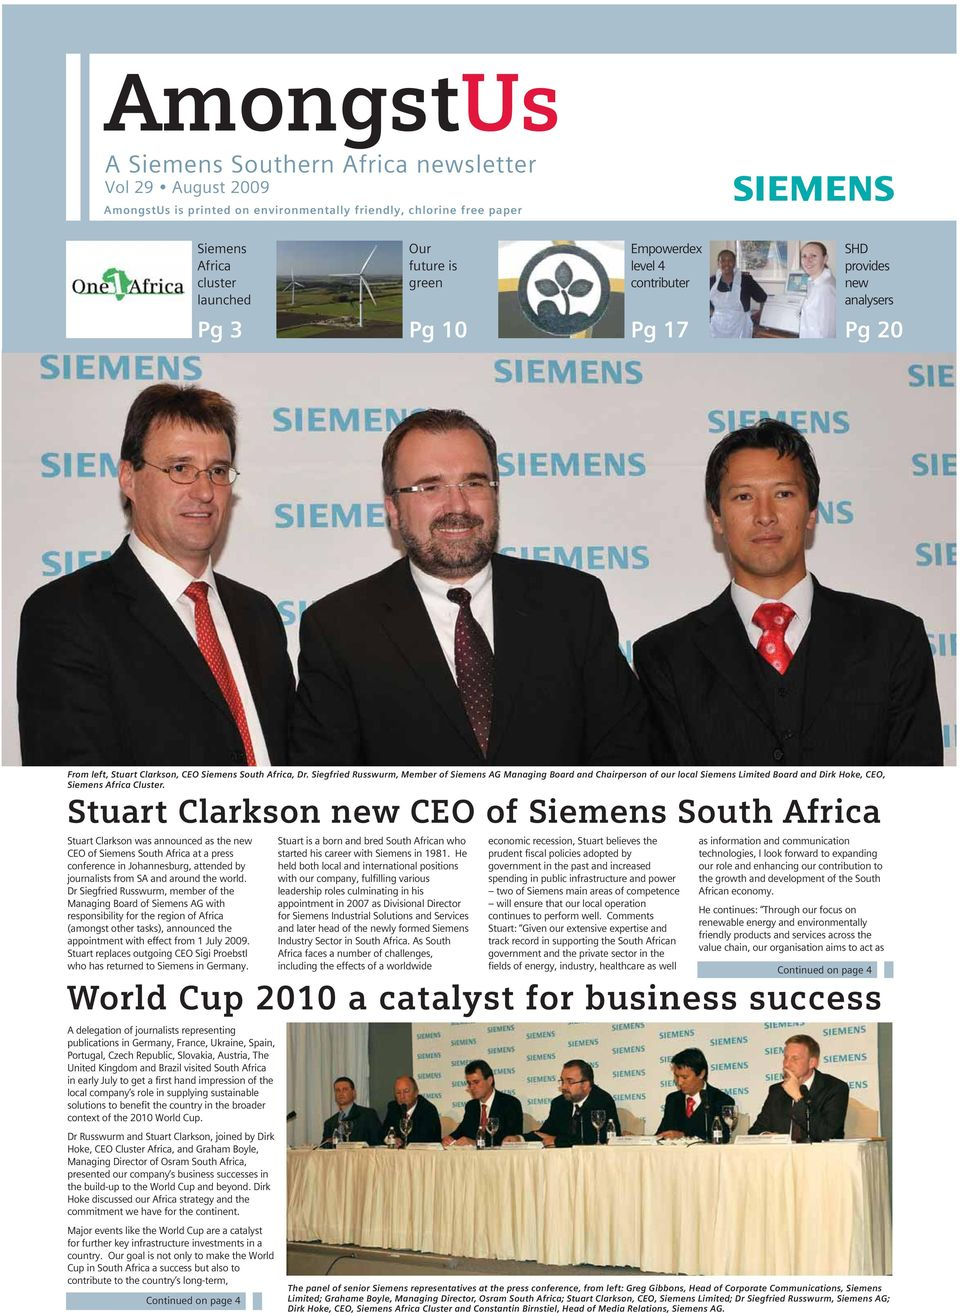 Siegfried Russwurm, Member of Siemens AG Managing Board and Chairperson of our local Siemens Limited Board and Dirk Hoke, CEO, Siemens Africa Cluster.